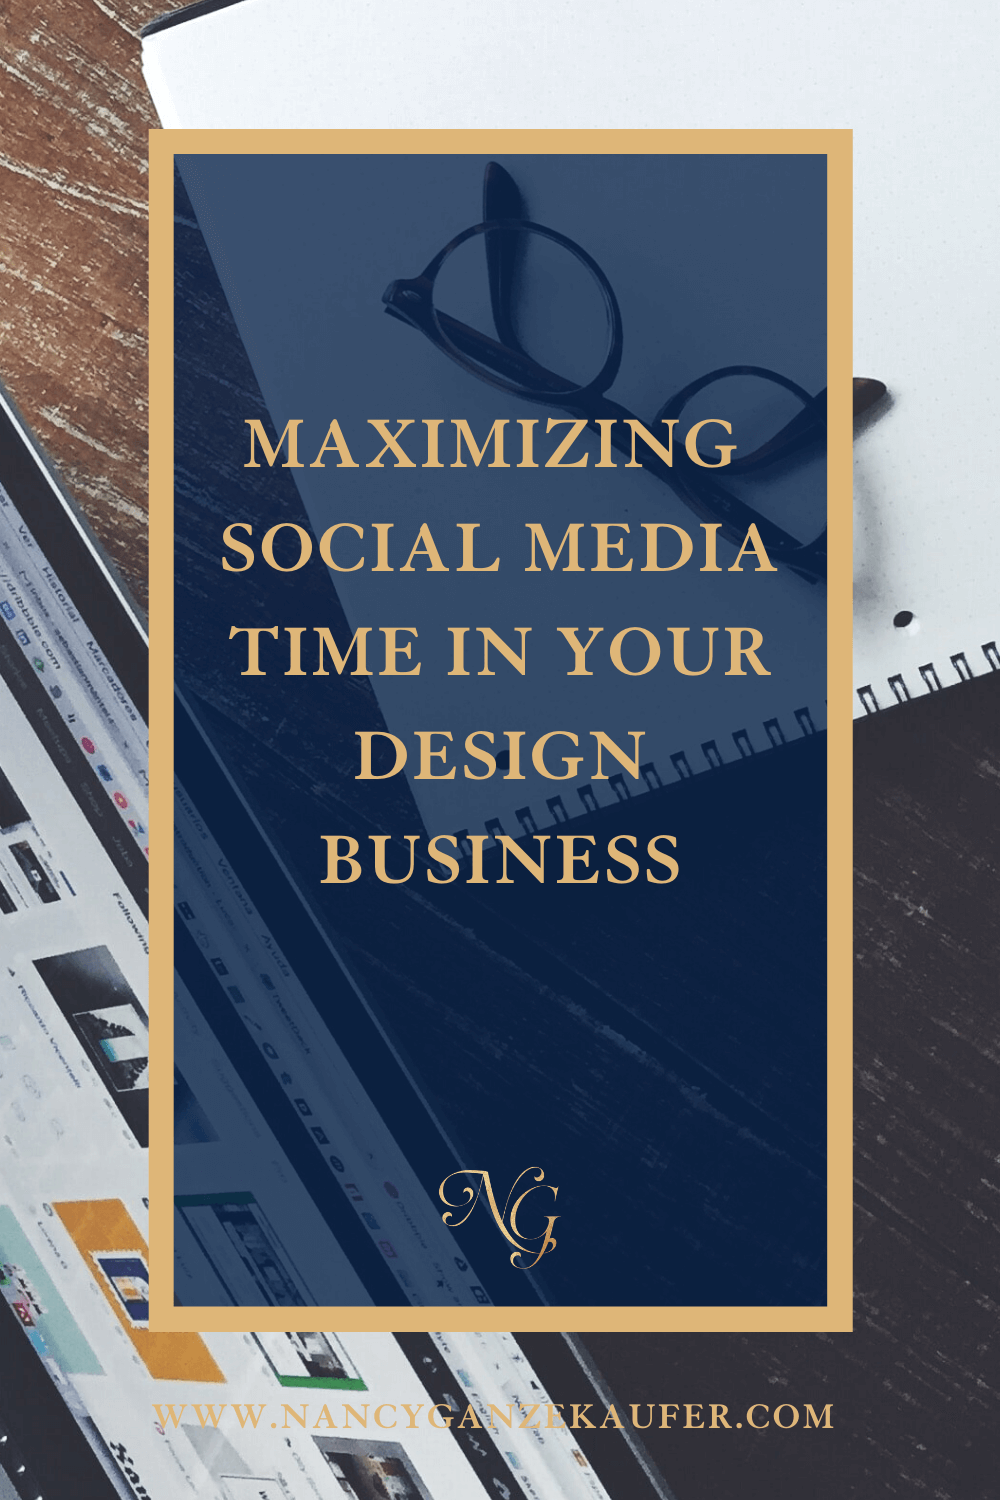 Maximizing use of your social media time in your design business.